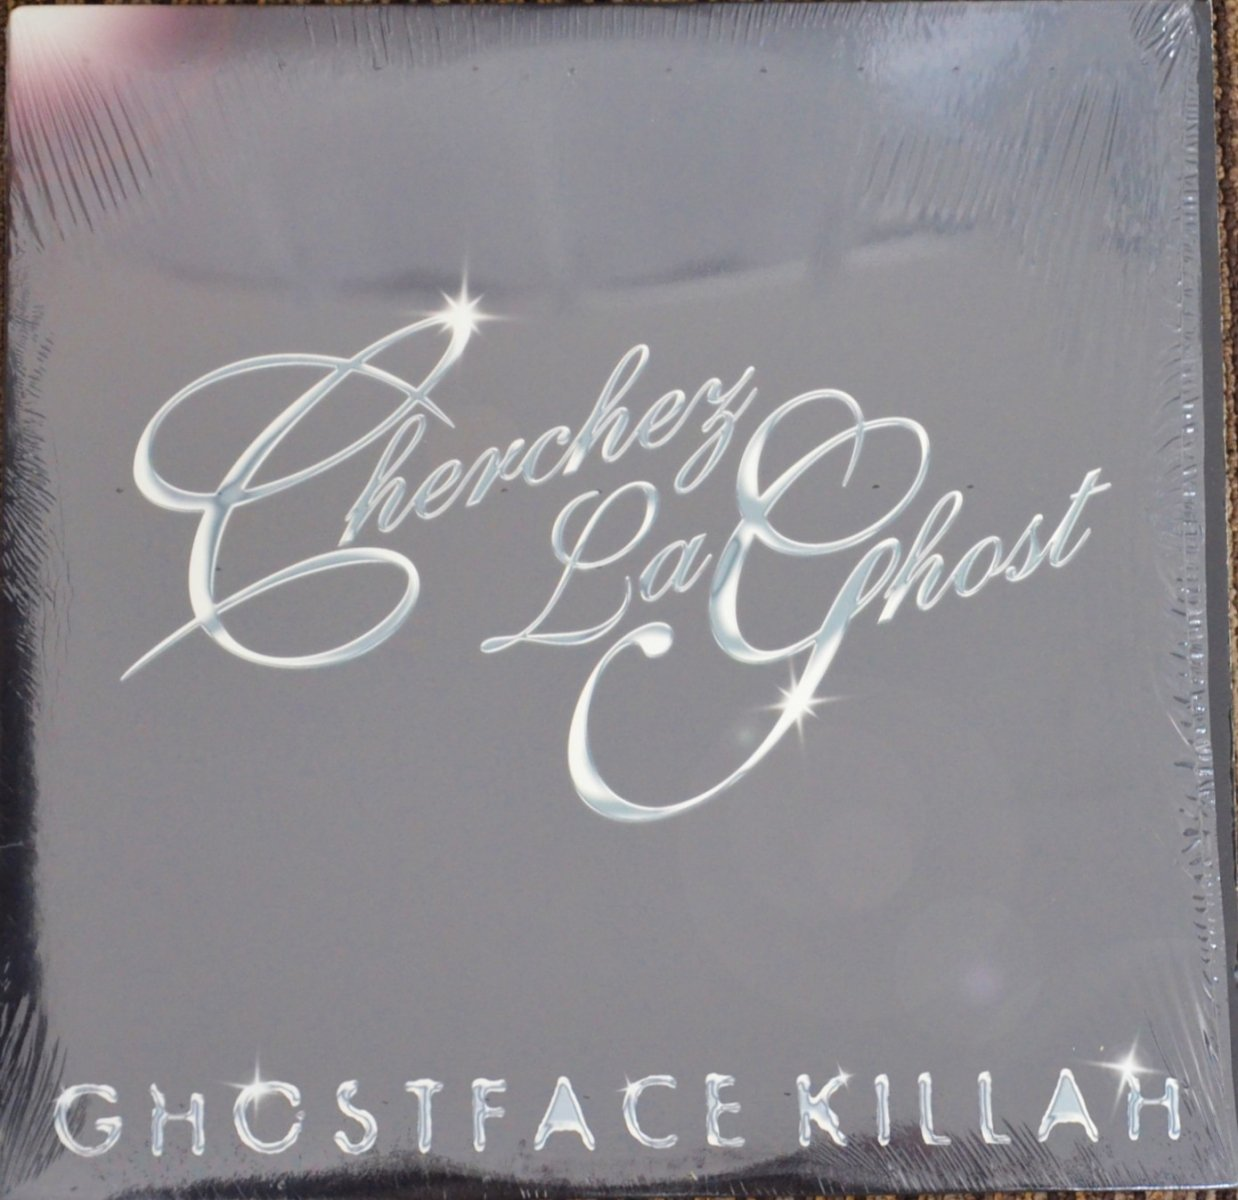 GHOSTFACE KILLAH ‎/ CHERCHEZ LAGHOST / WE MADE IT (12